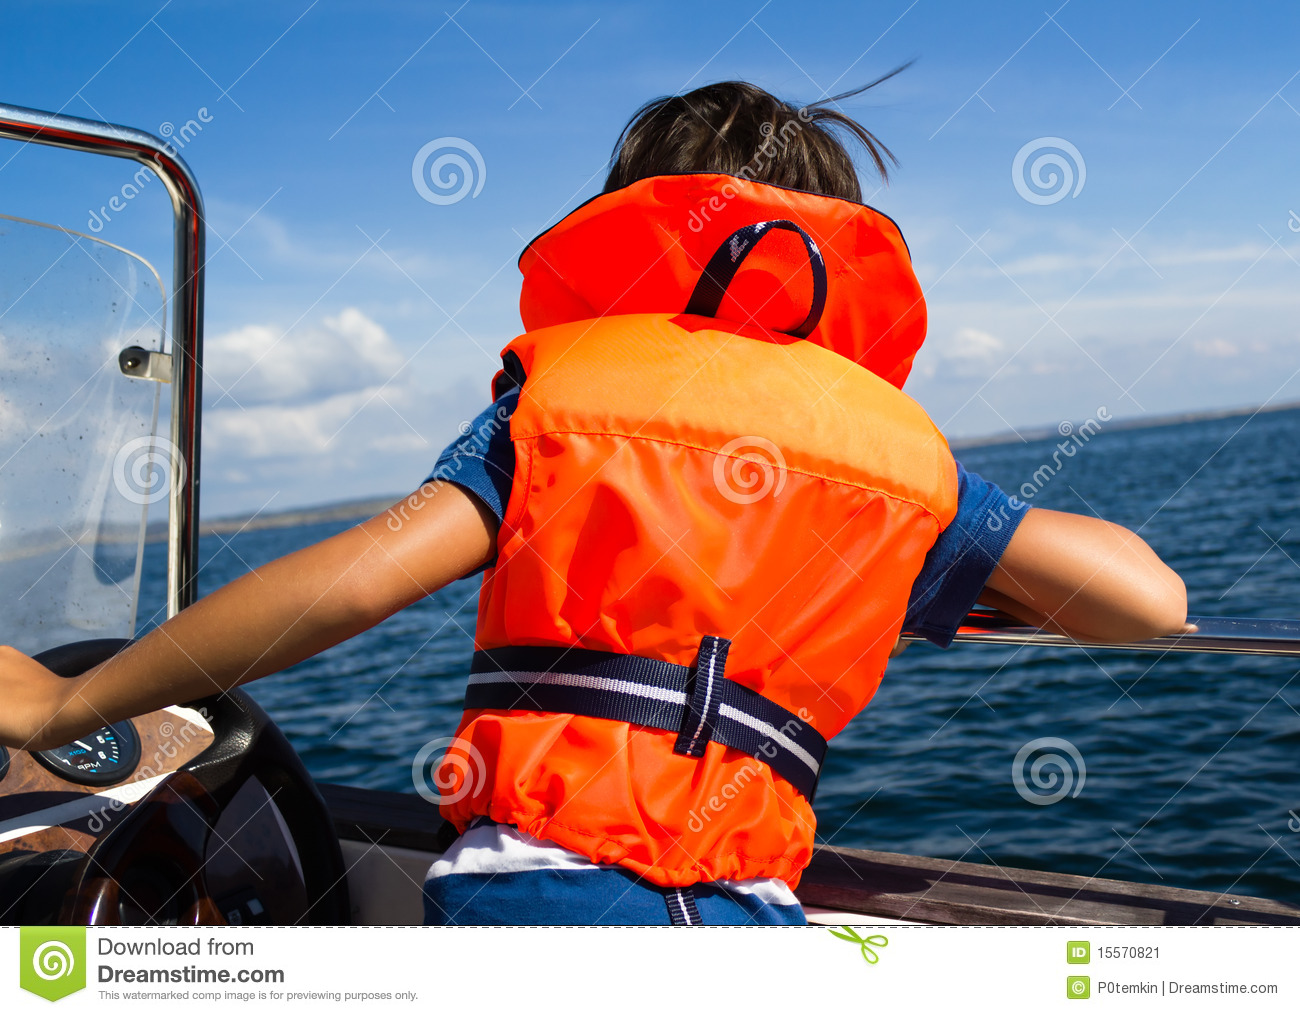 Child with life vest